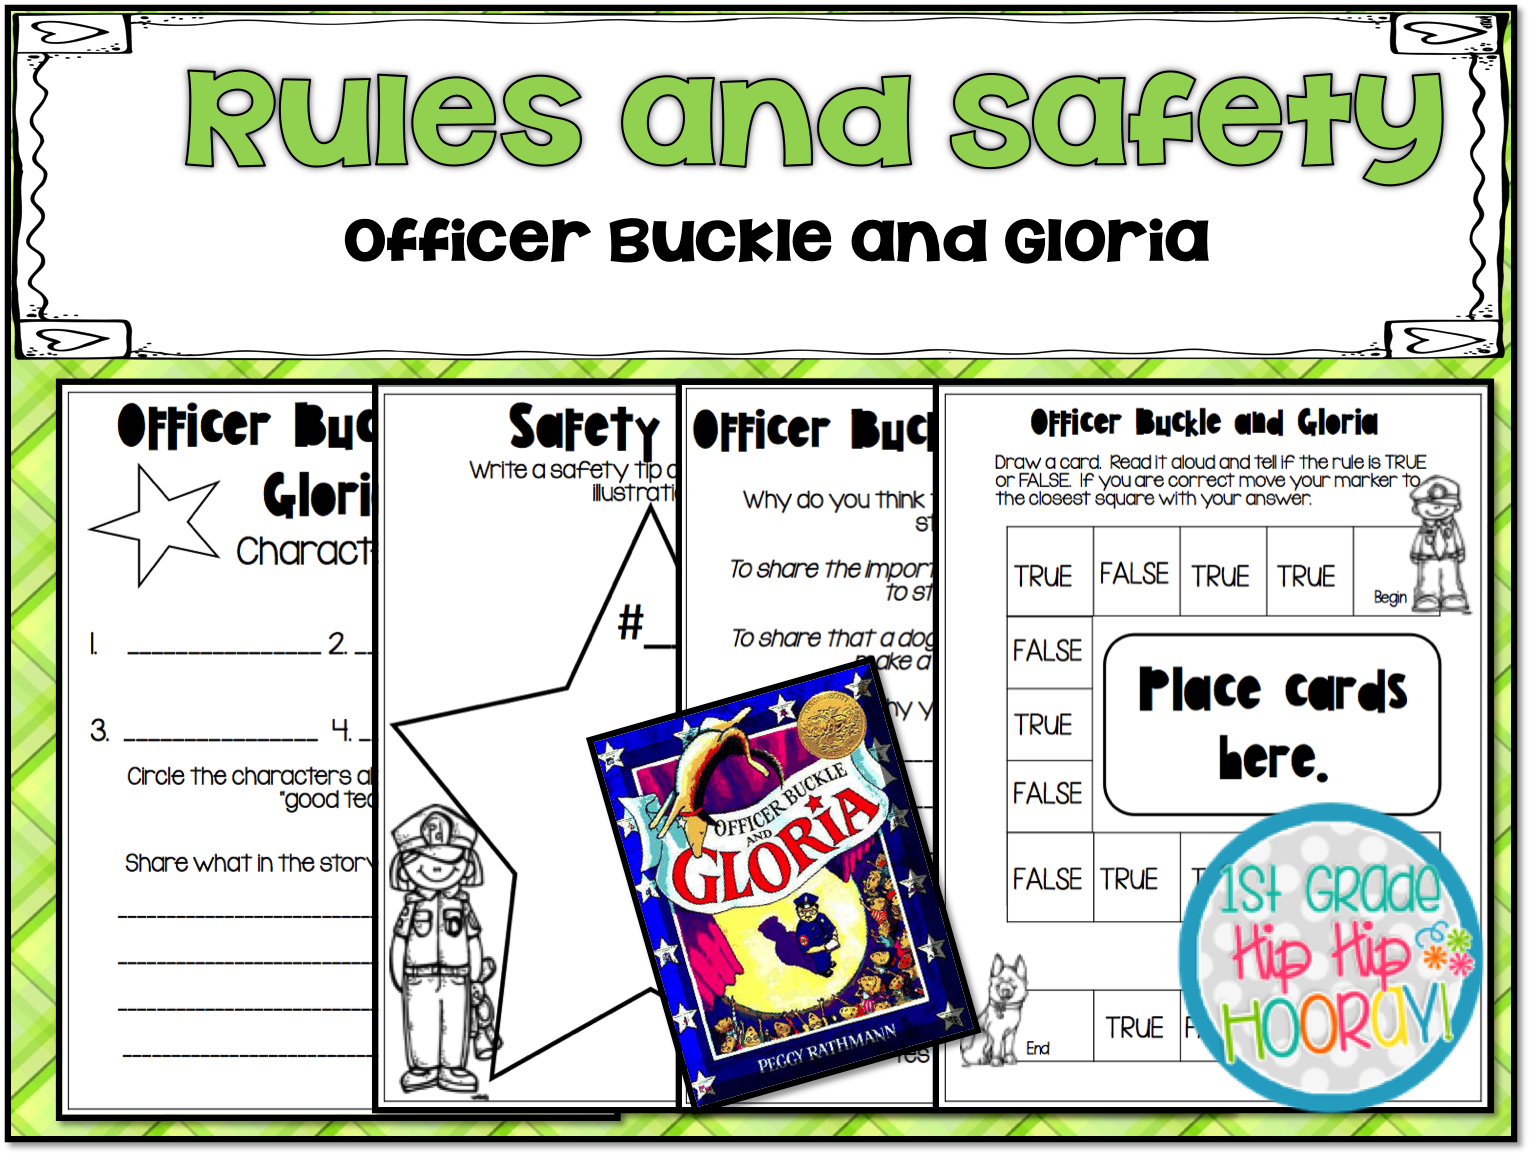 1st Grade Hip Hip Hooray Officer Buckle And Friends